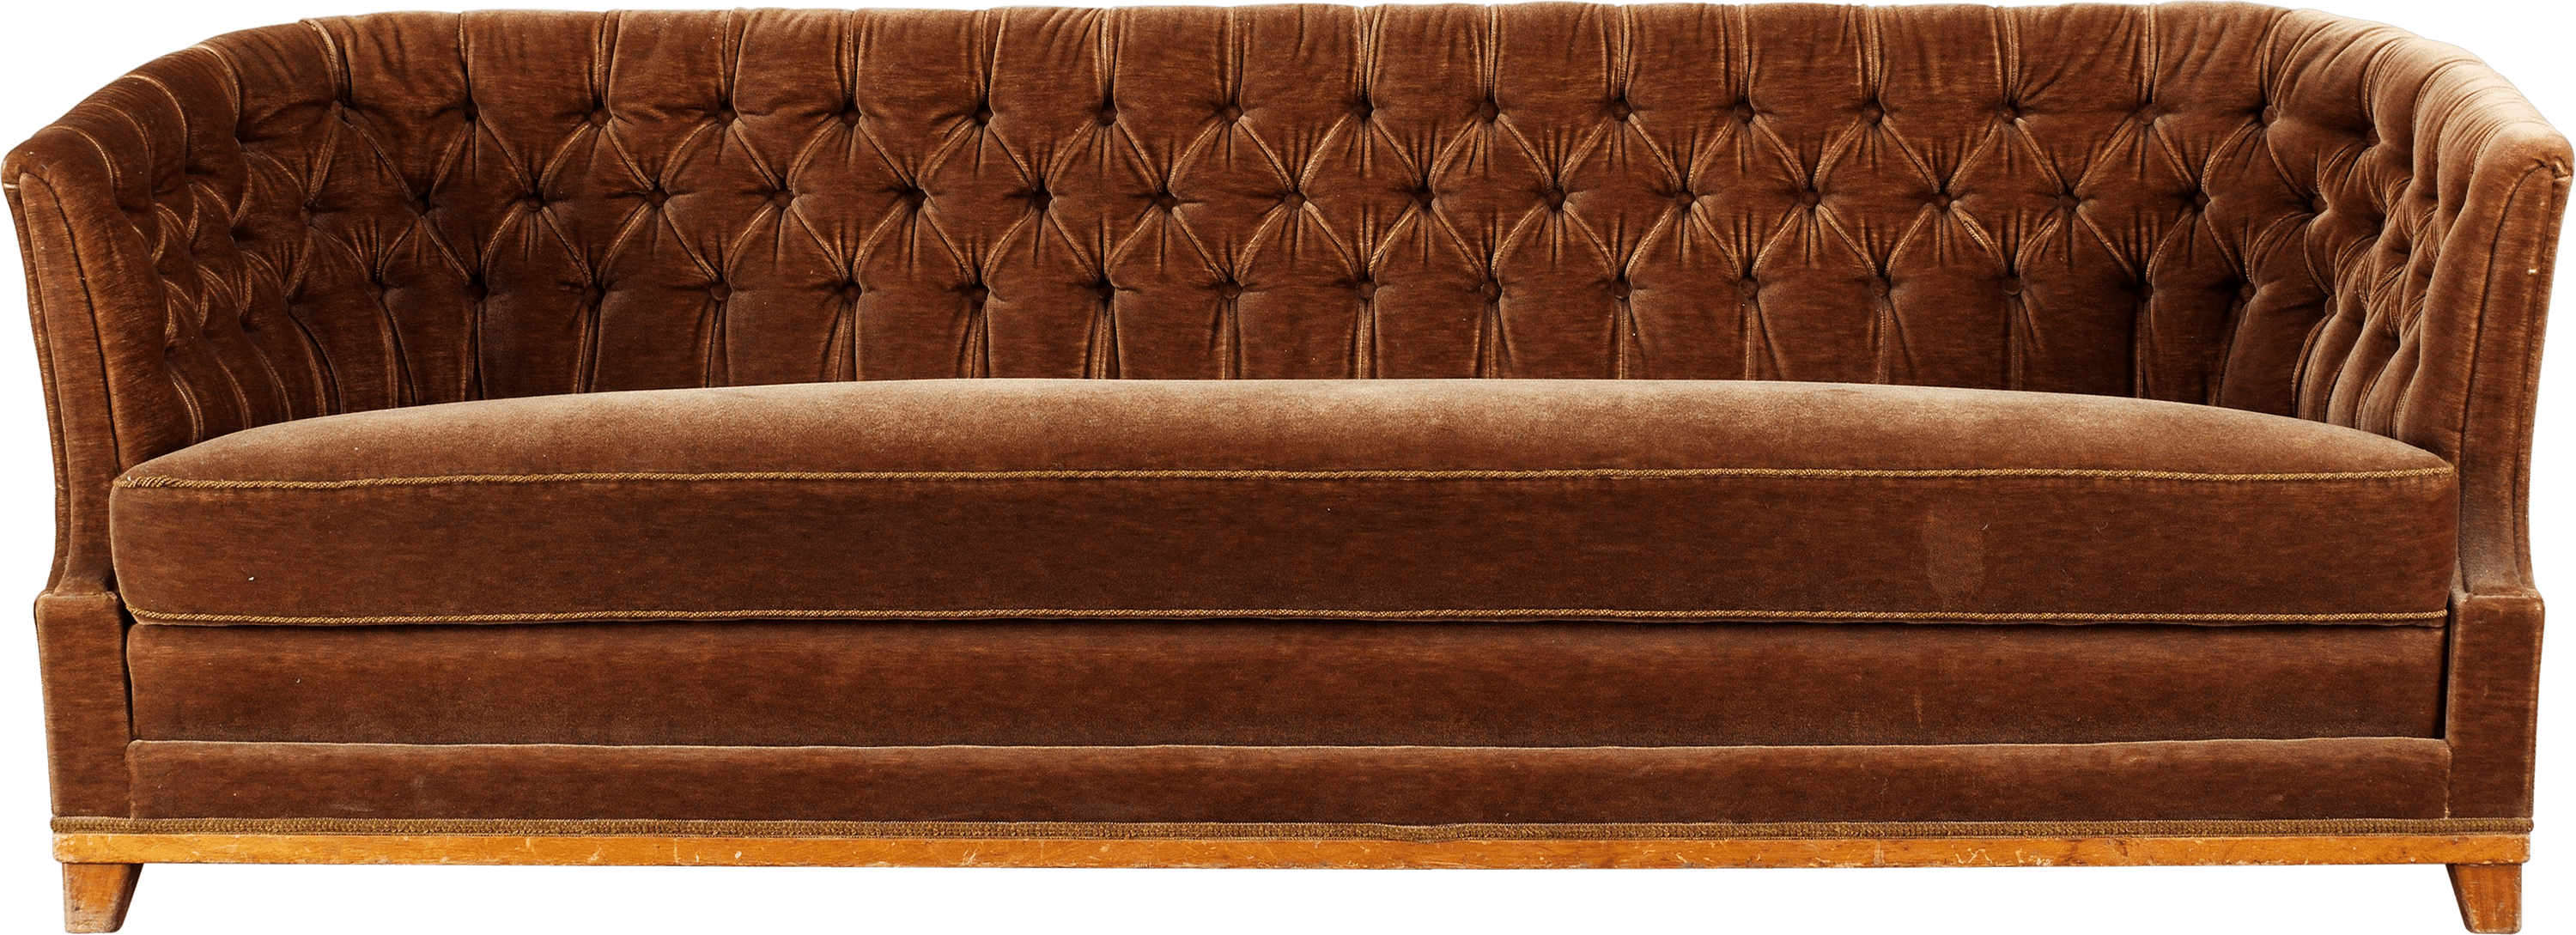 Couch clipart brown couch. Large vintage fabric sofa